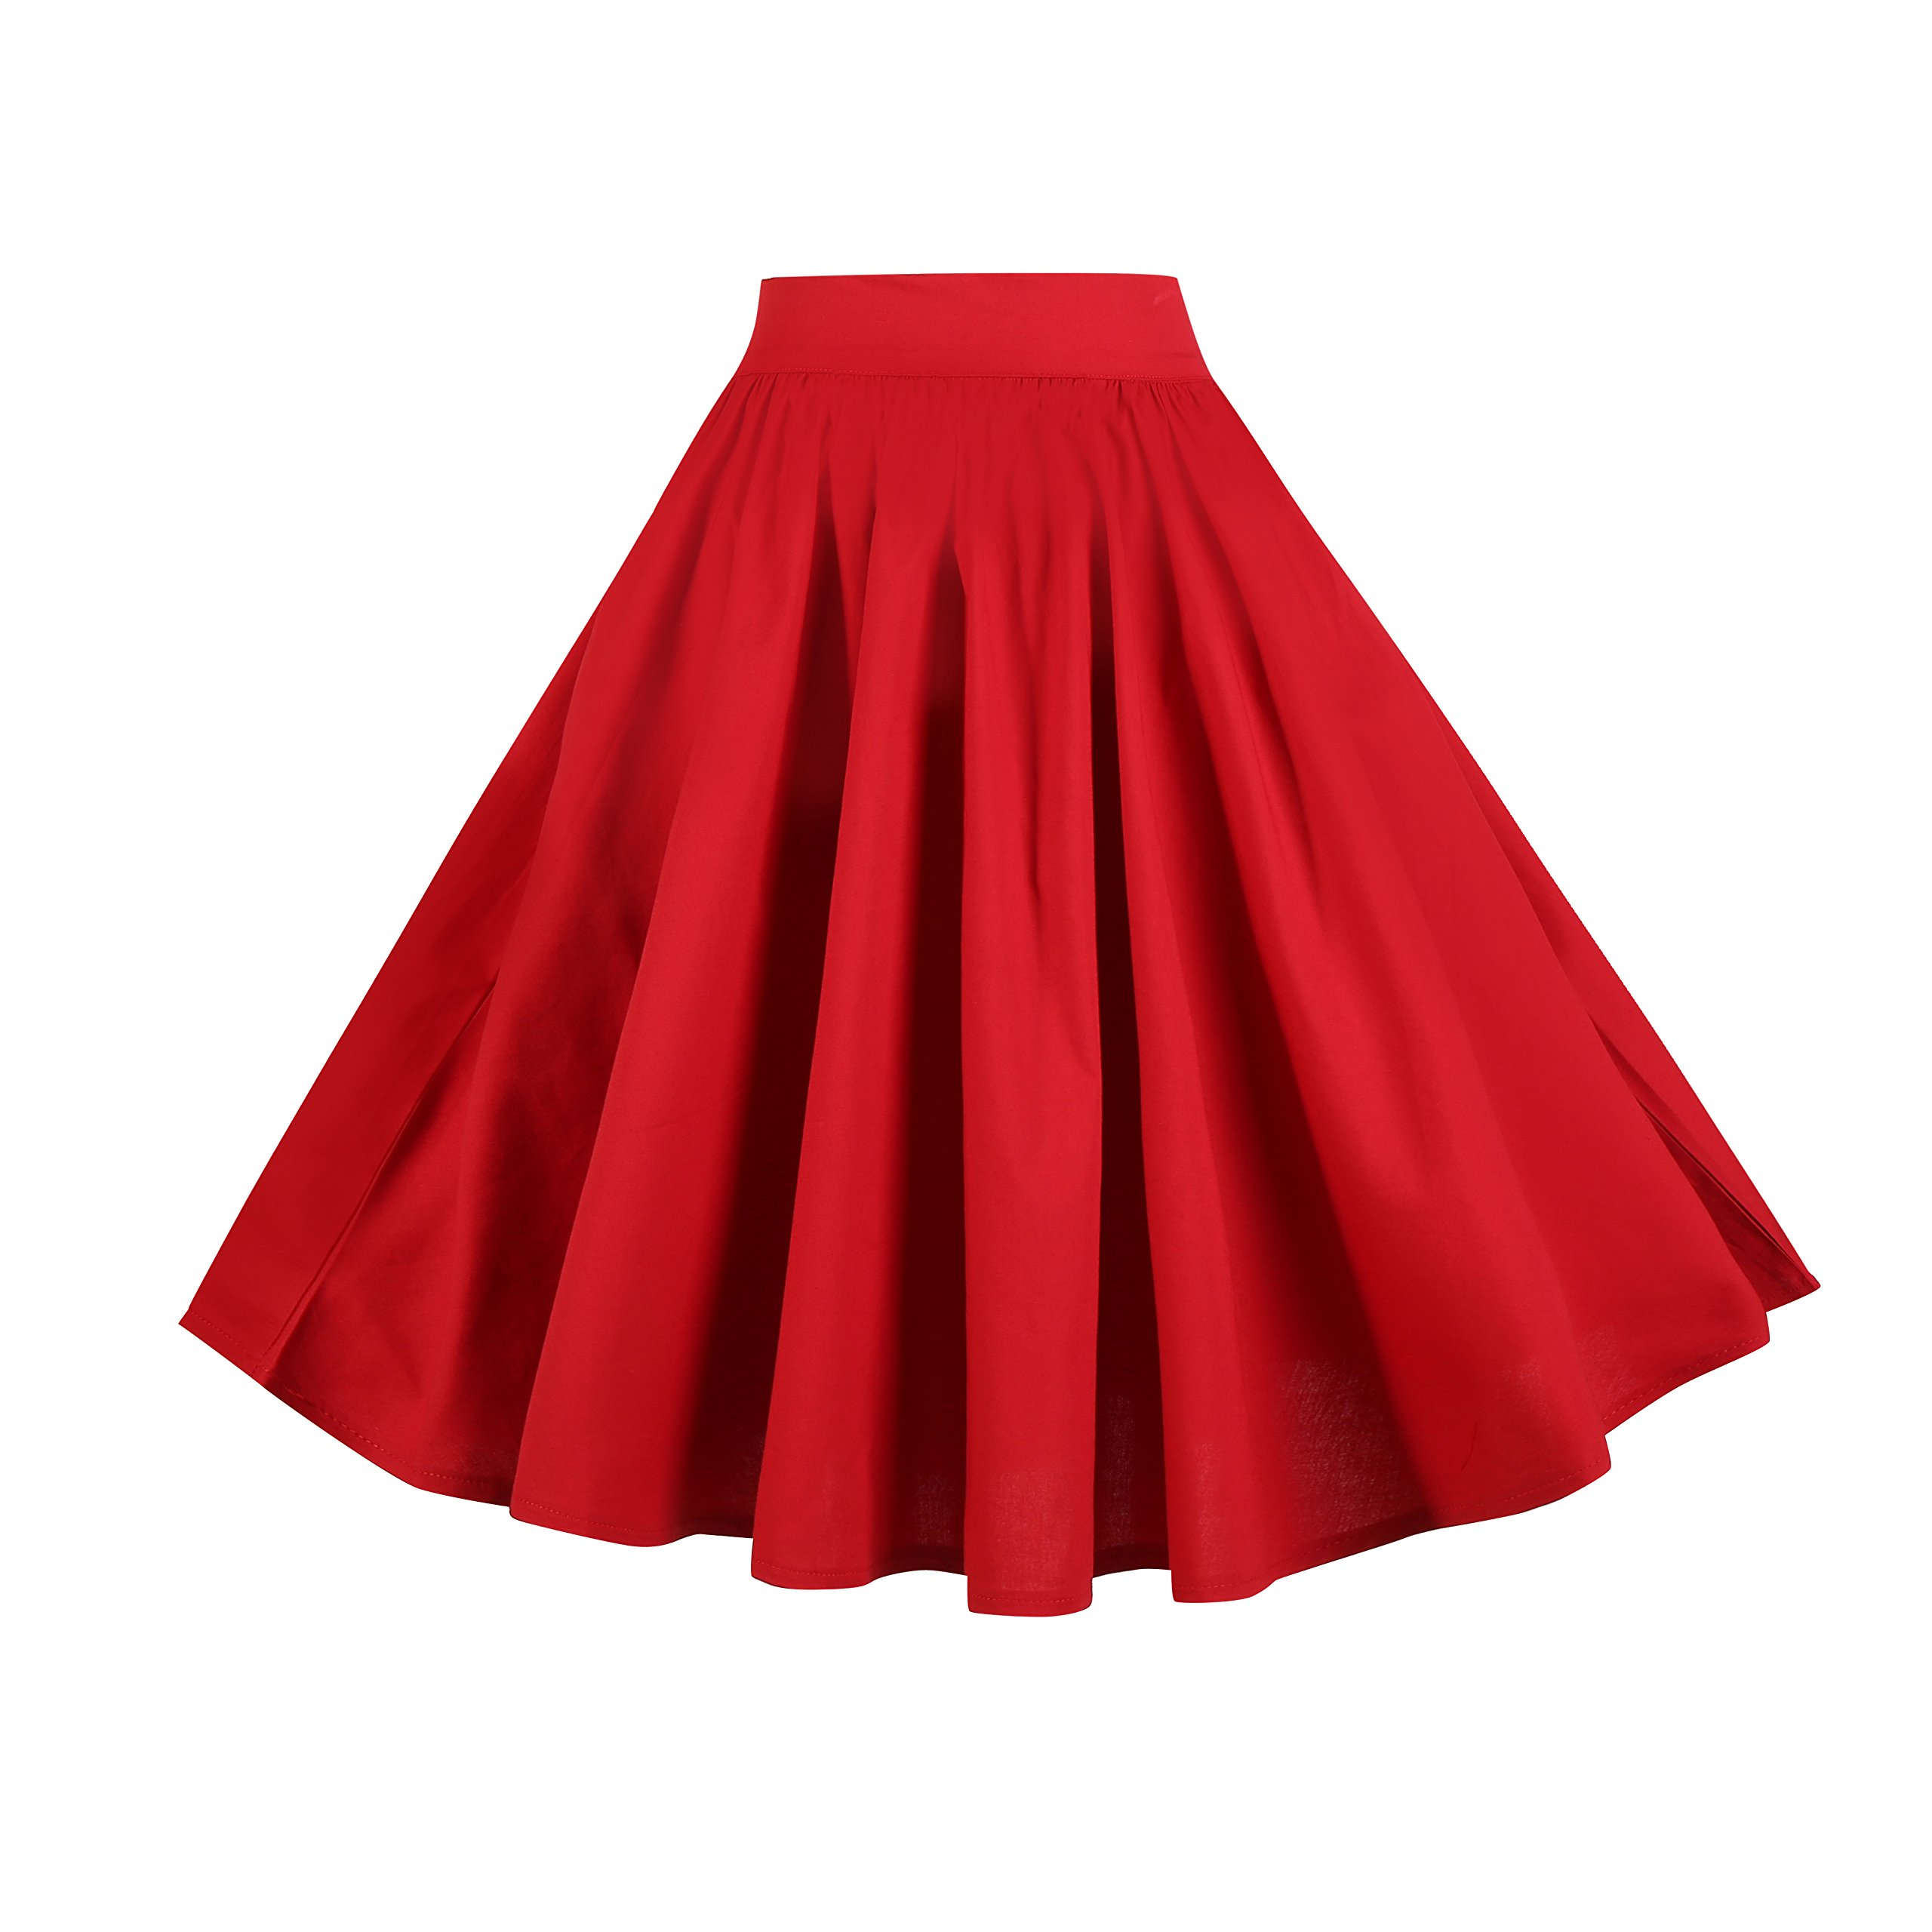 BI.TENCON Women's Vintage Red Pleated Flared Skater Skirt Dress with Pockets Knee Length Plus XL by BI.TENCON